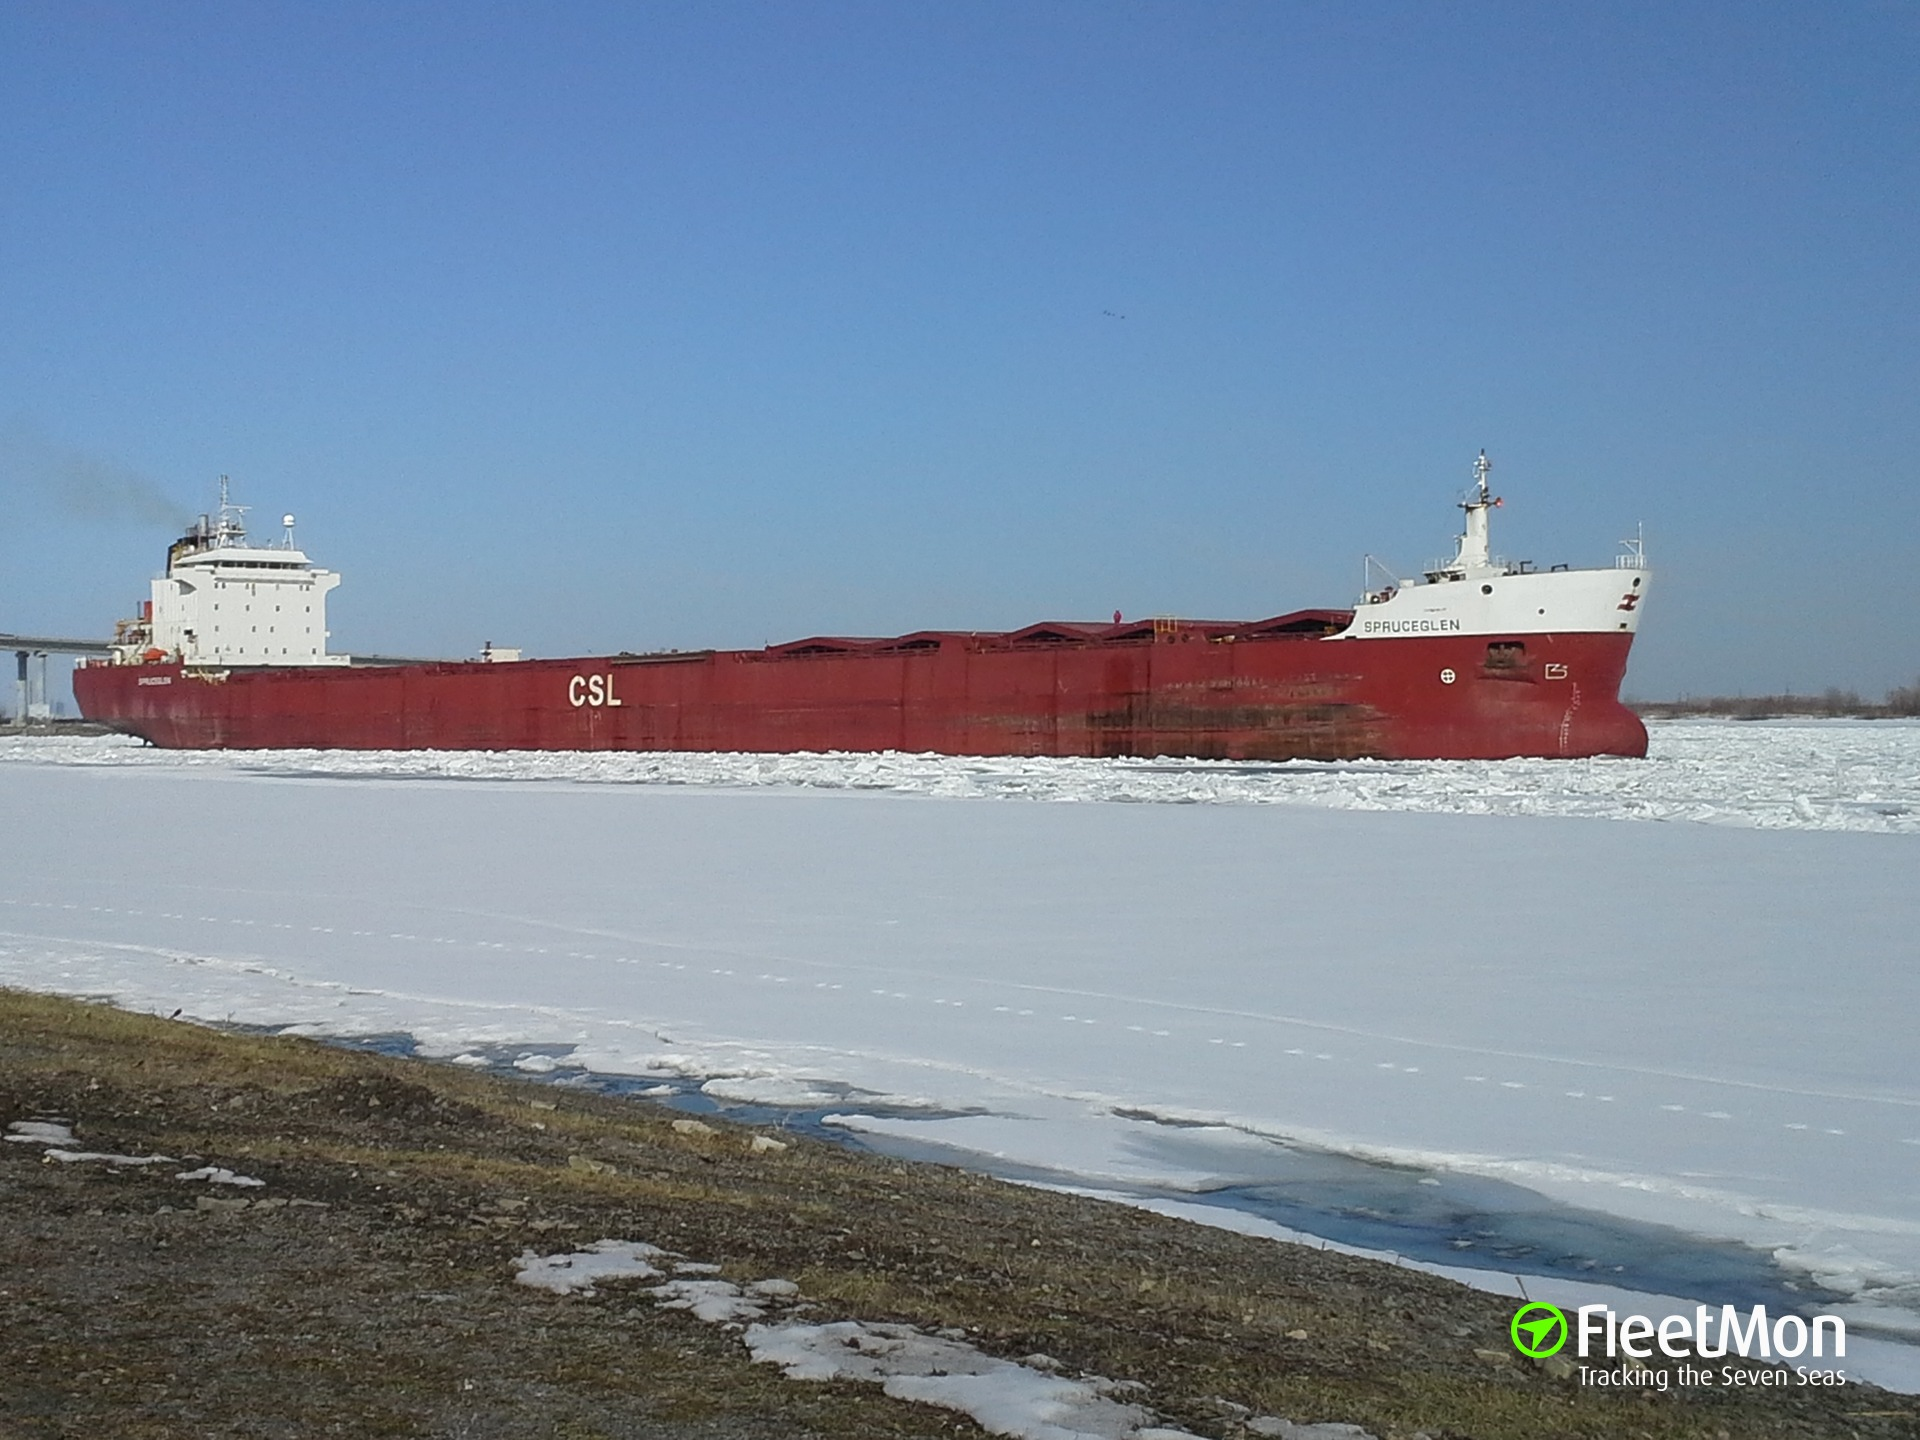 Laker Spruceglen aground and refloated, Great Lakes